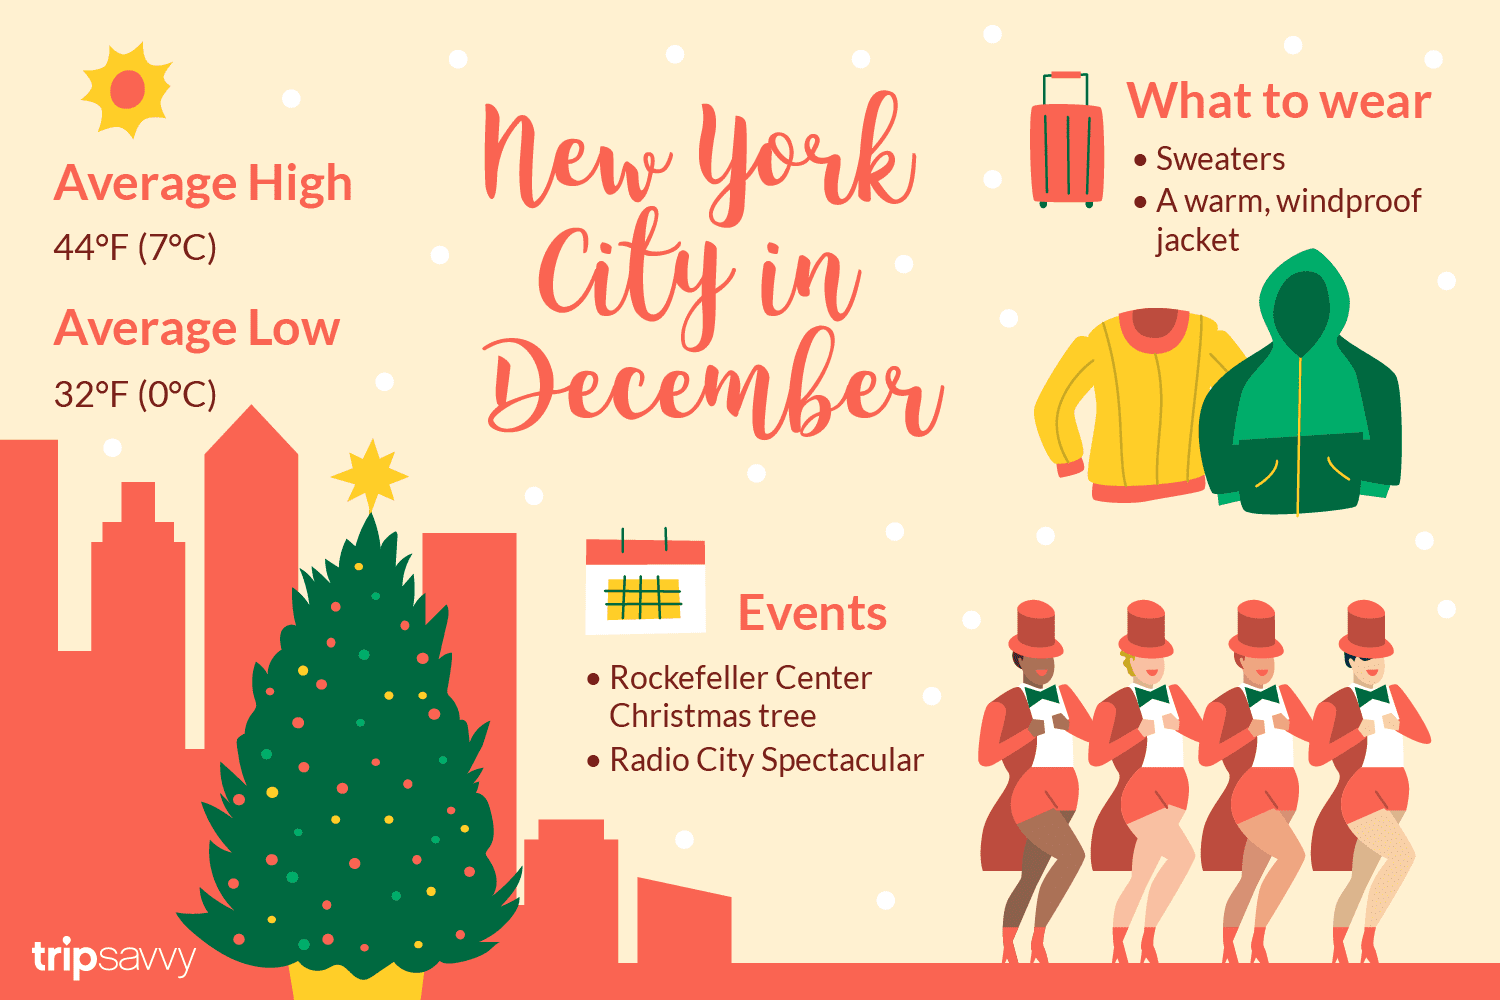 December in New York City: Weather and Event Guide